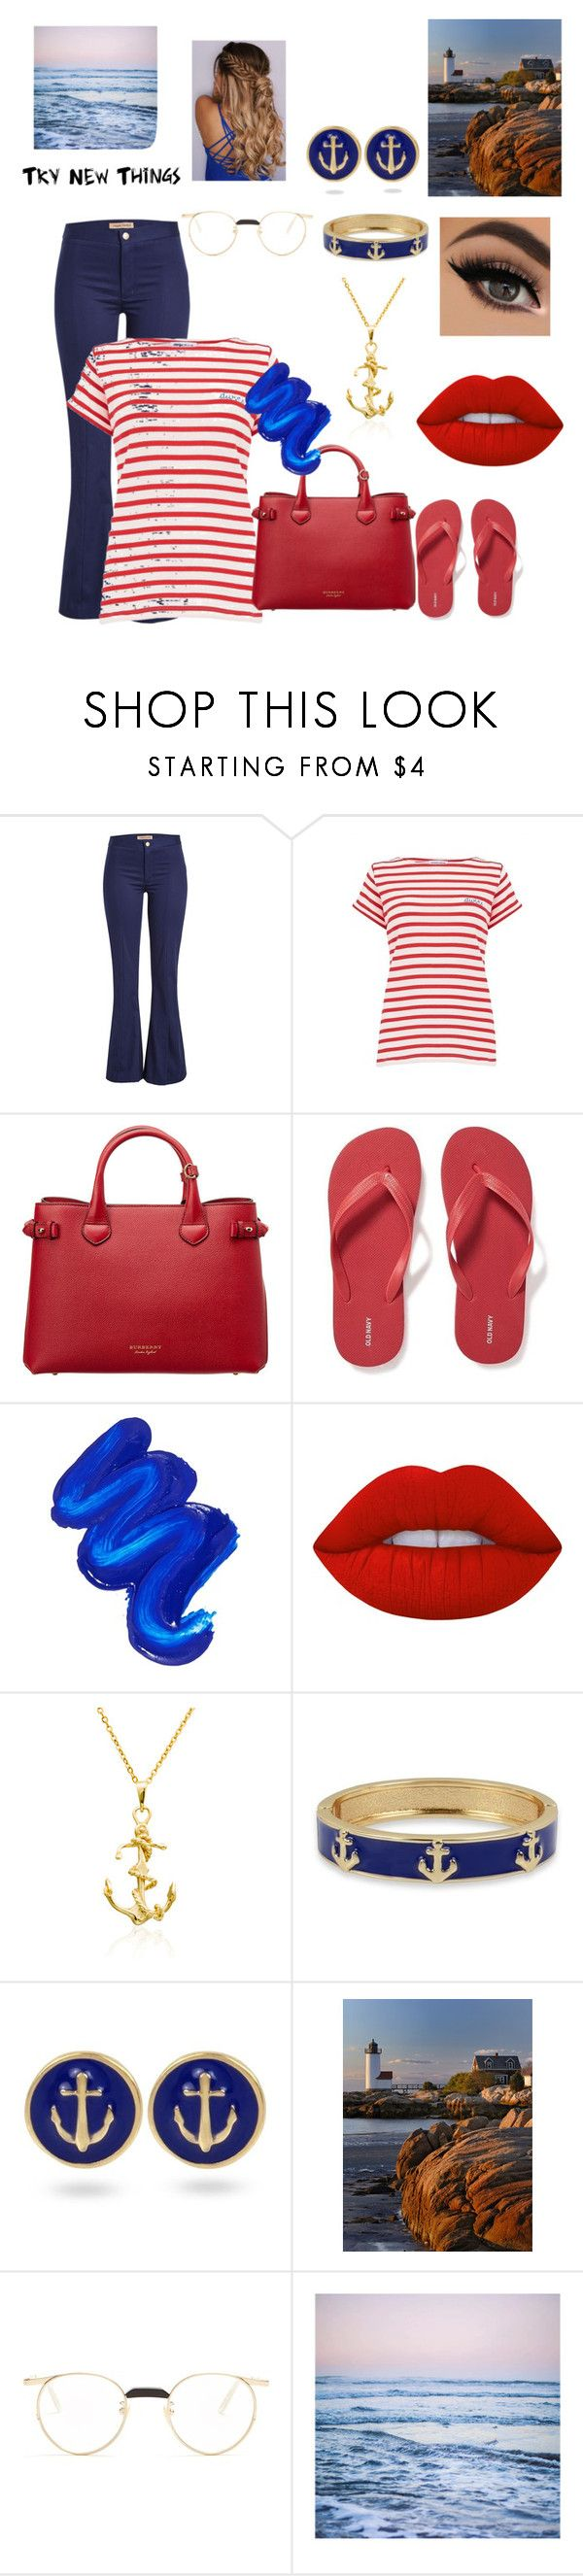 """""""Get Wet"""" by miramirror04 ❤ liked on Polyvore featuring Maggie Marilyn, Maison Labiche, Burberry, Old Navy, Mermaid Salon, Lime Crime, Crown & Ivy, Gucci and Leah Flores"""